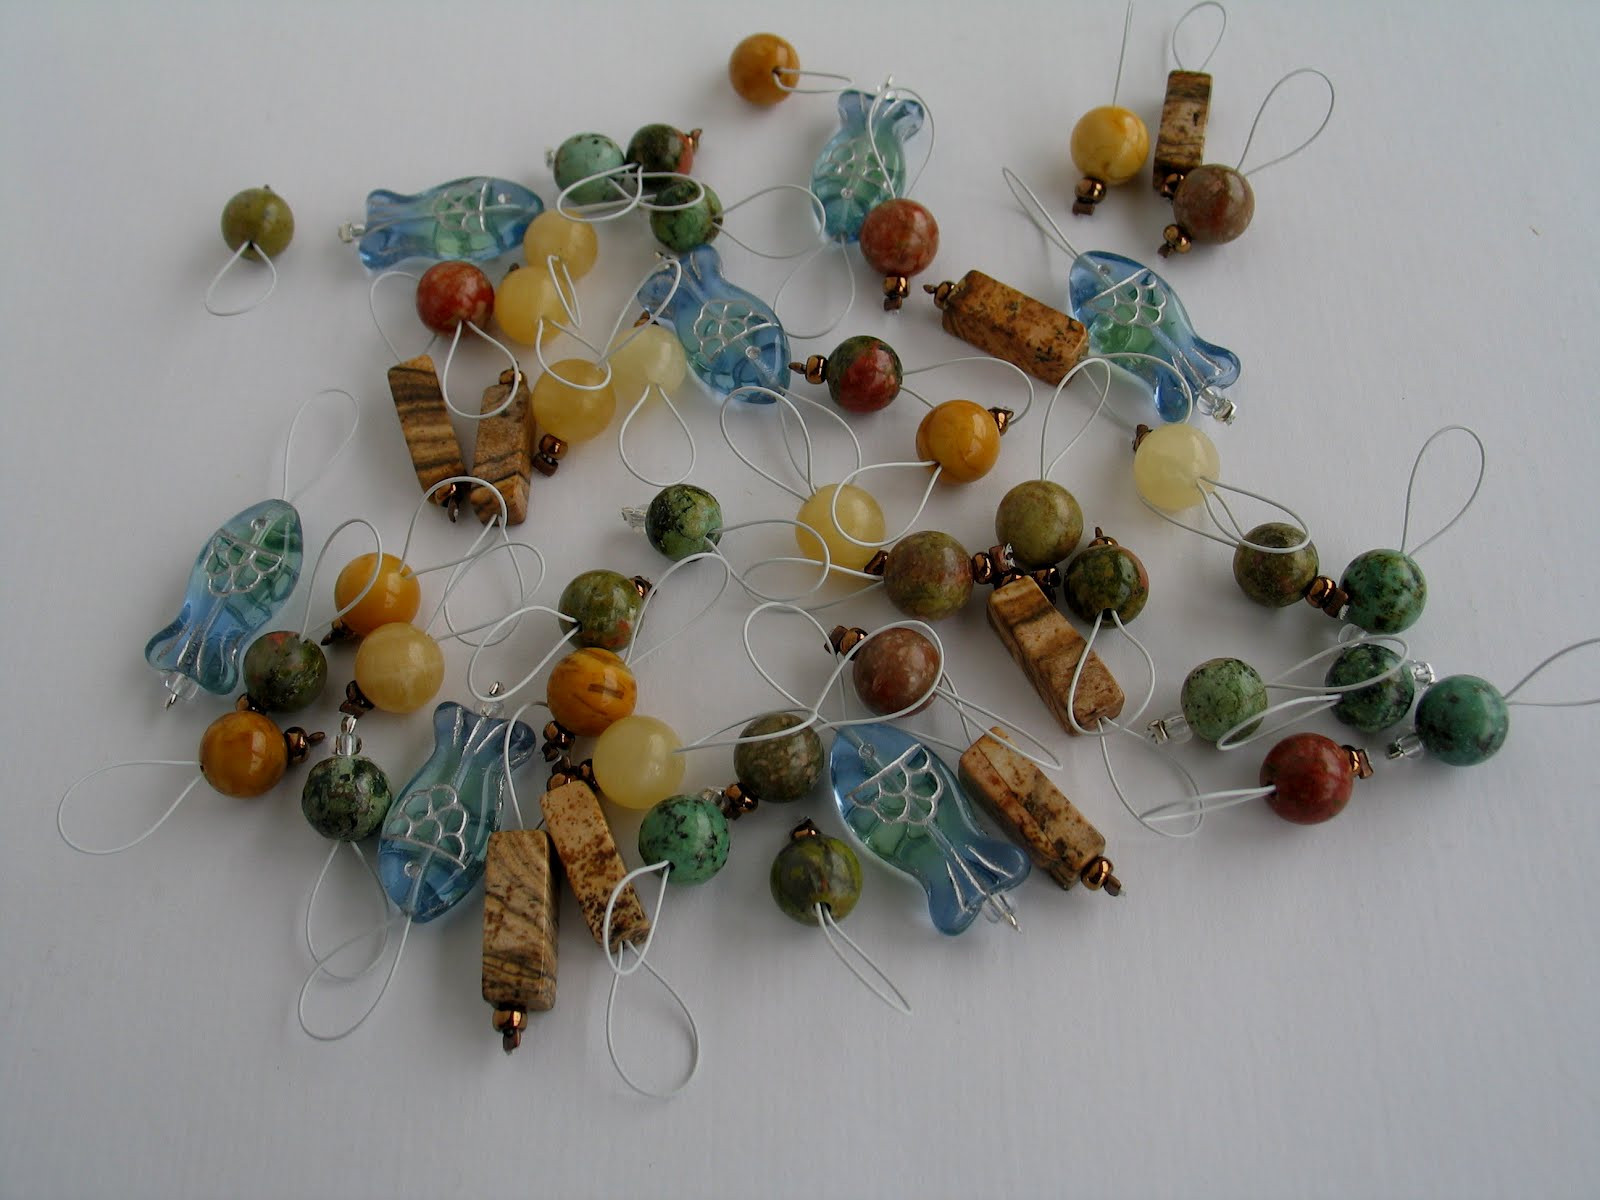 Best Of Peppercorn Knits Stitch Markers Knitting Stitch Markers Of Gorgeous 48 Models Knitting Stitch Markers